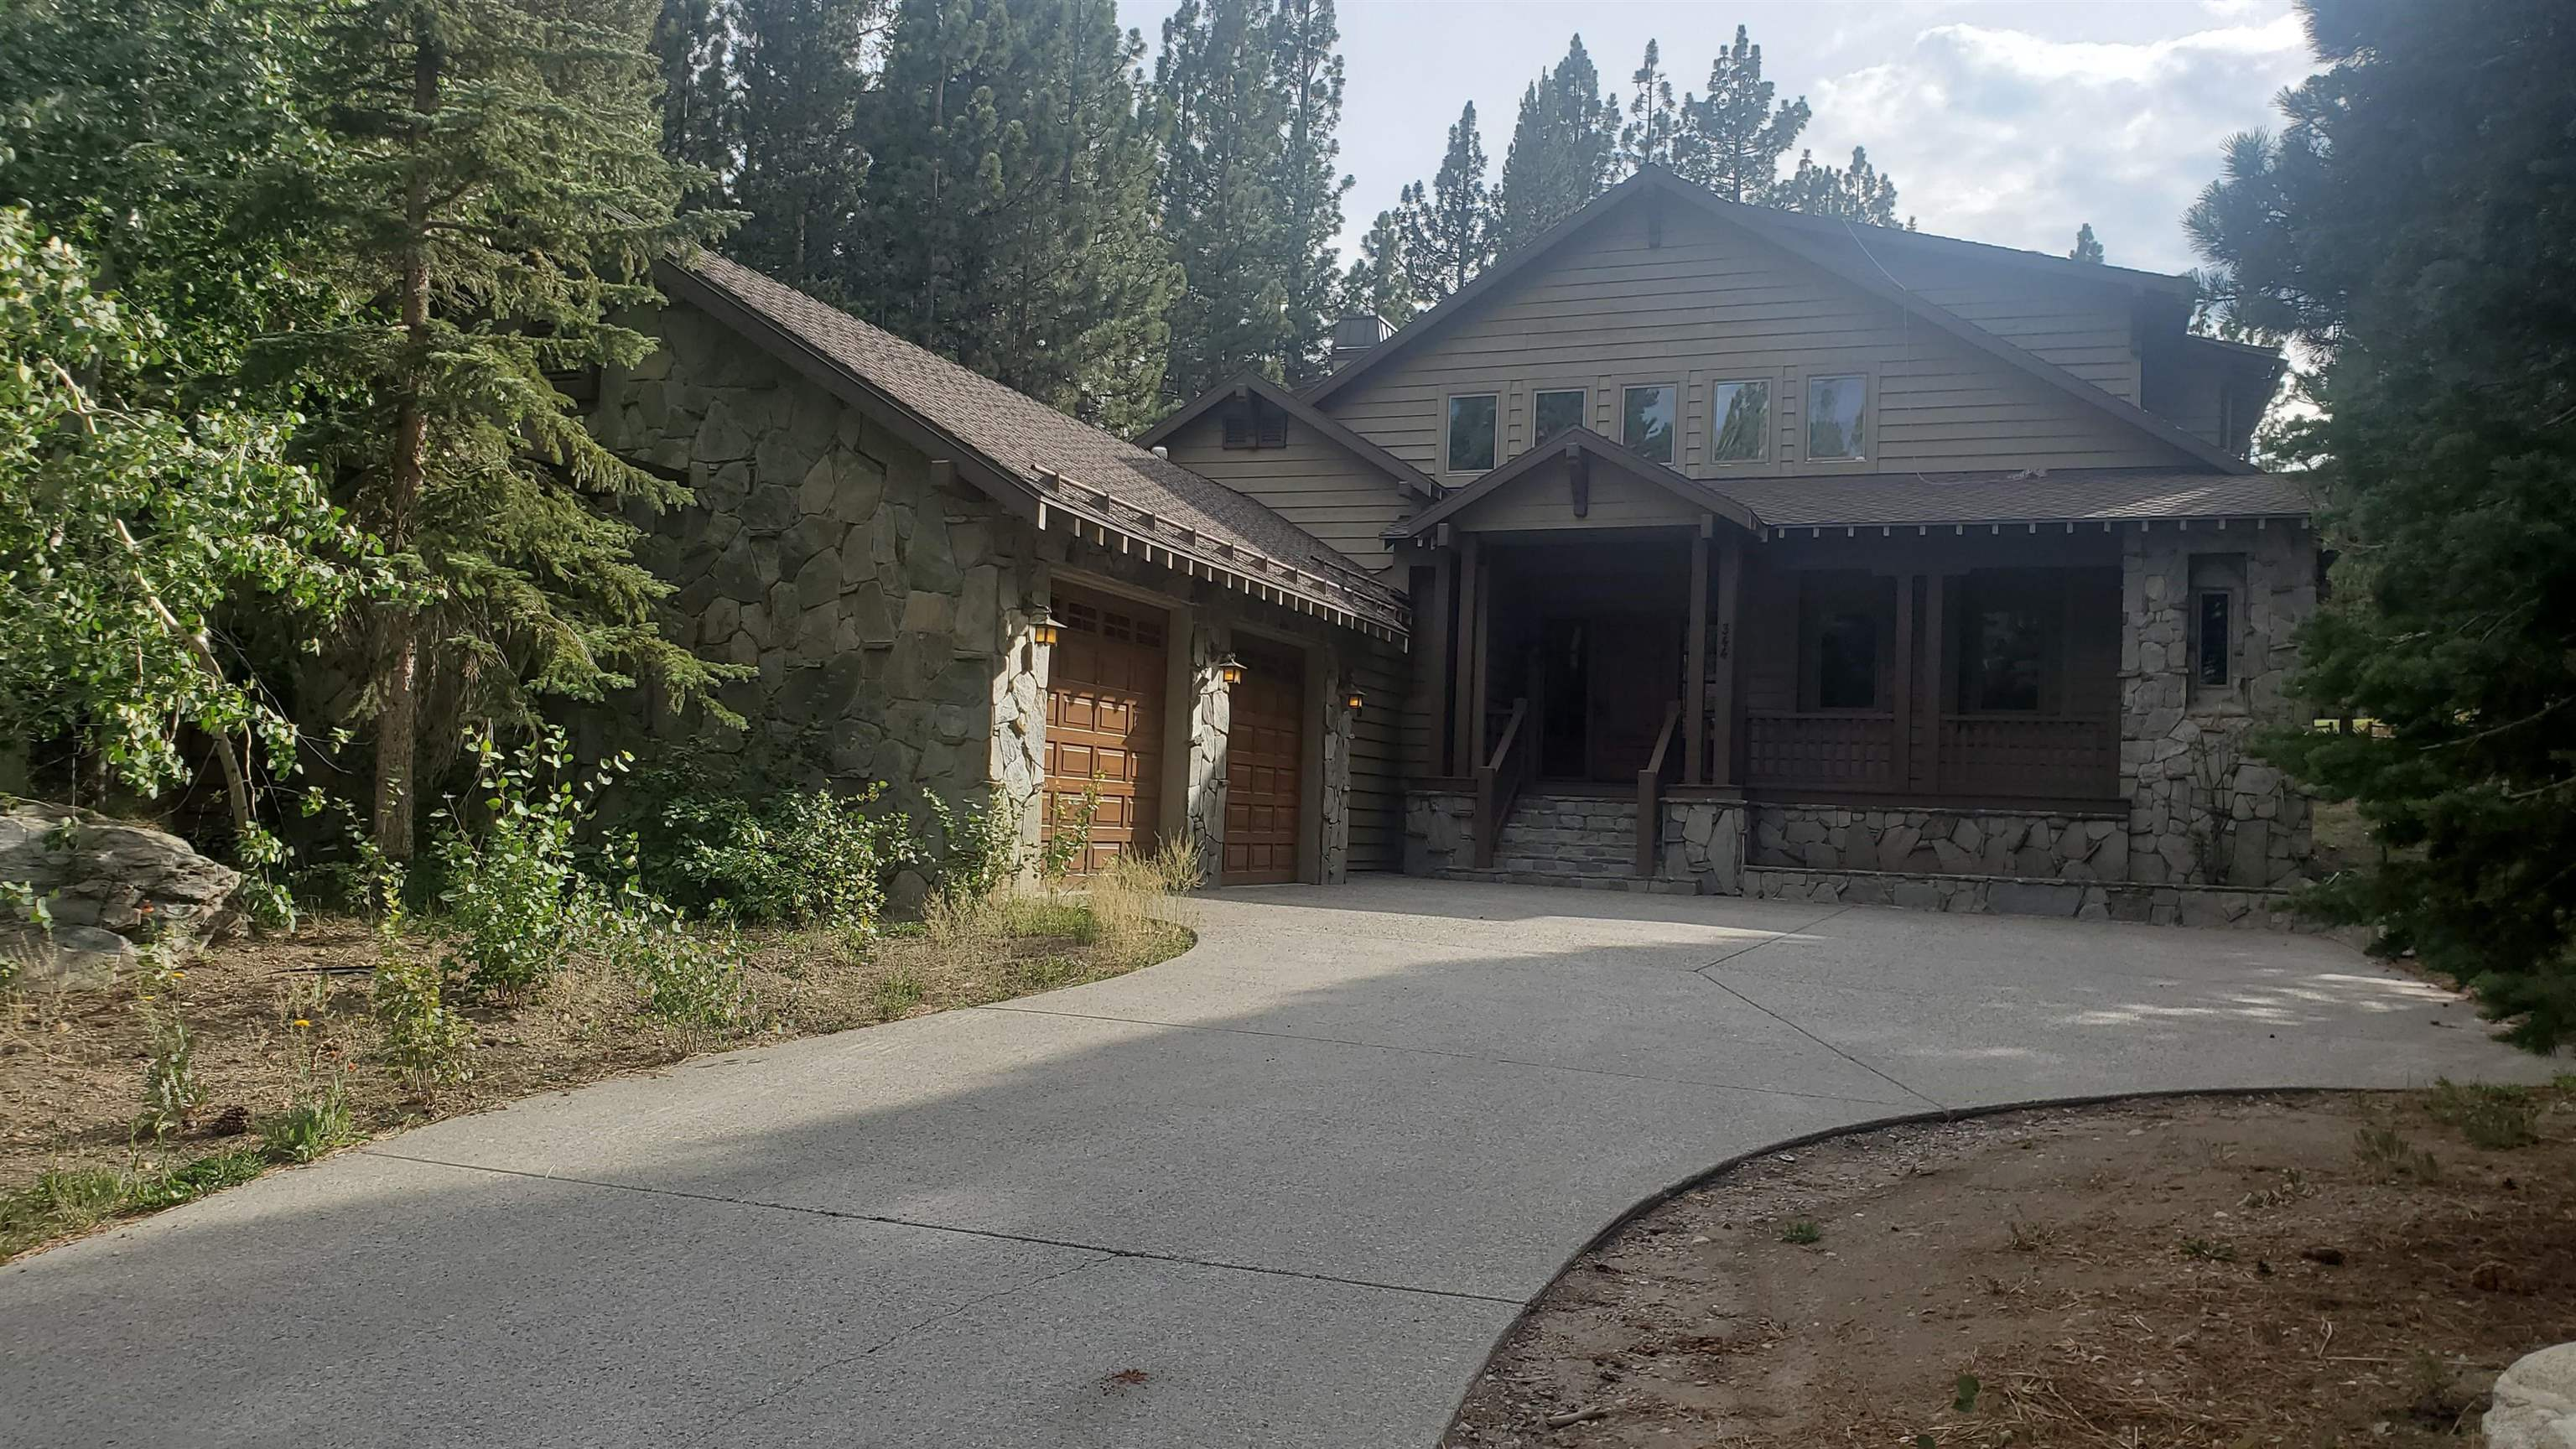 Beautiful custom Craftsman style home on the 13th Fairway of the Sierra Star Golf Course in quiet cul-de-sac in the Starwood neighborhood.  Large almost 1/2 acre lot, large great room, gourmet kitchen with butler's pantry, four large ensuite bedrooms, oversized three-car garage, library, hand-peeled hickory flooring, knotty alder cabinetry, large south-facing patio in the back overlooking the golf course to enjoy the outdoors.  Home is being sold beautifully furnished.  This is a must see!